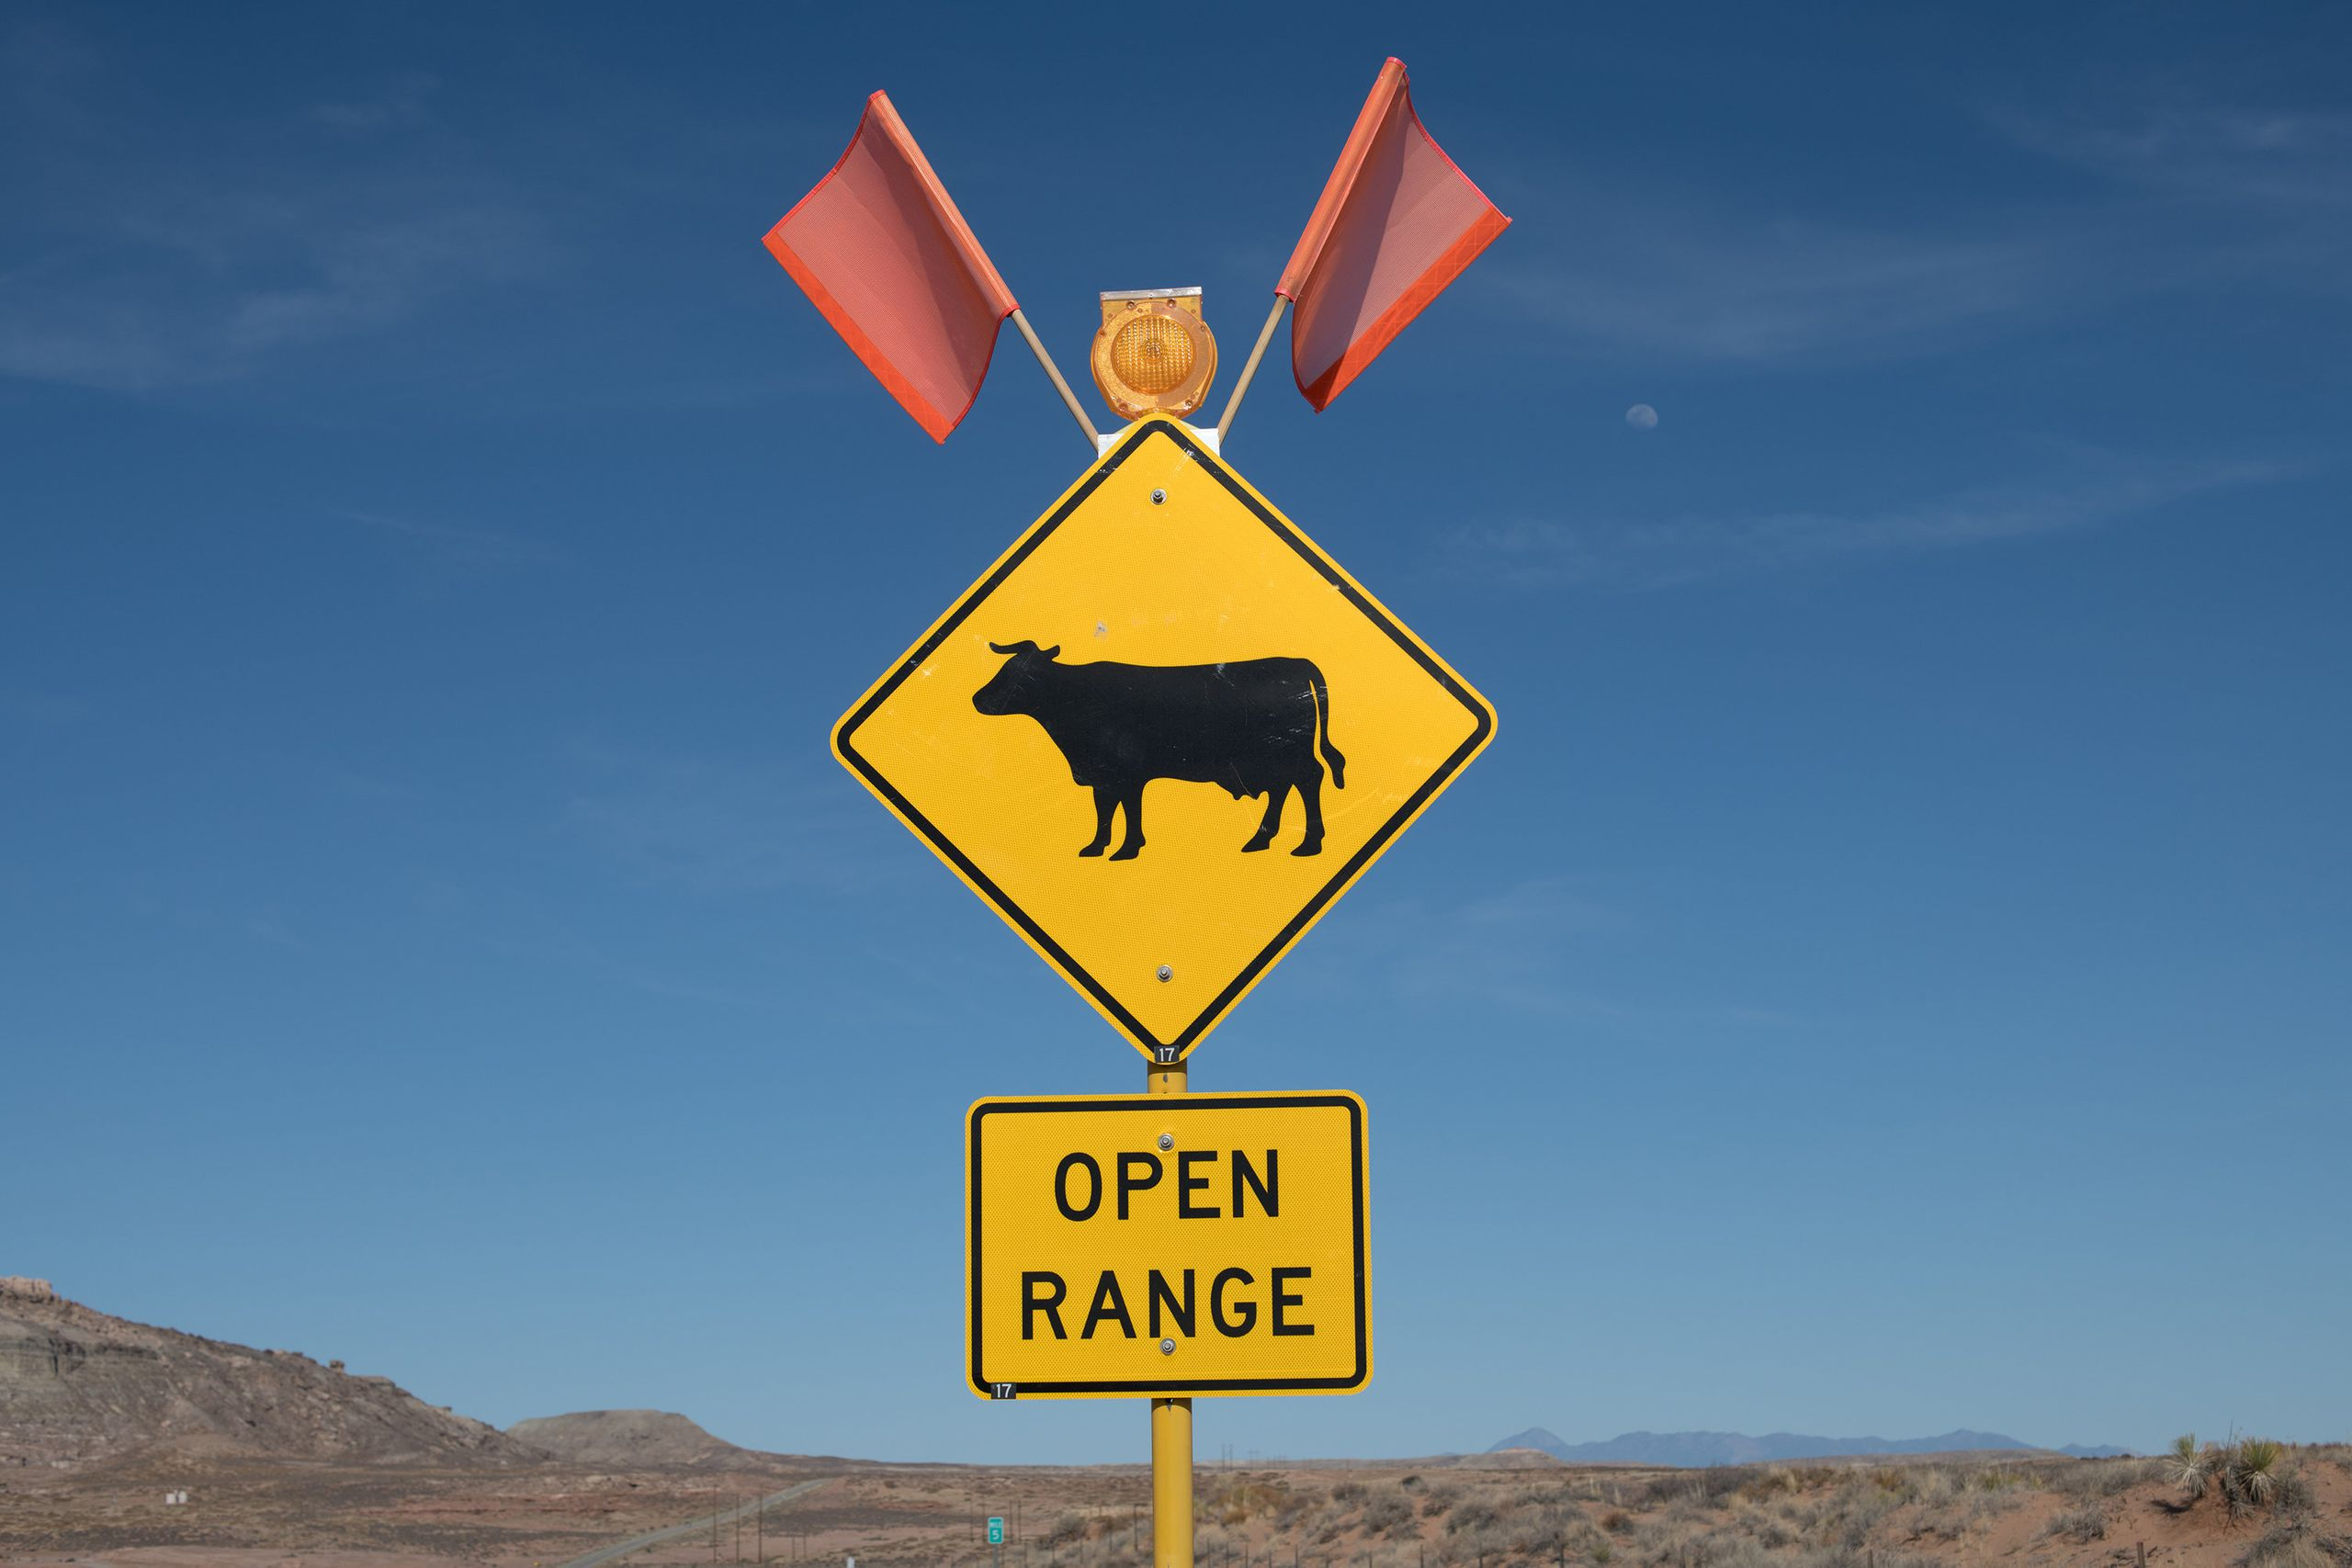 Open range cattle sign near Bluff, Utah.